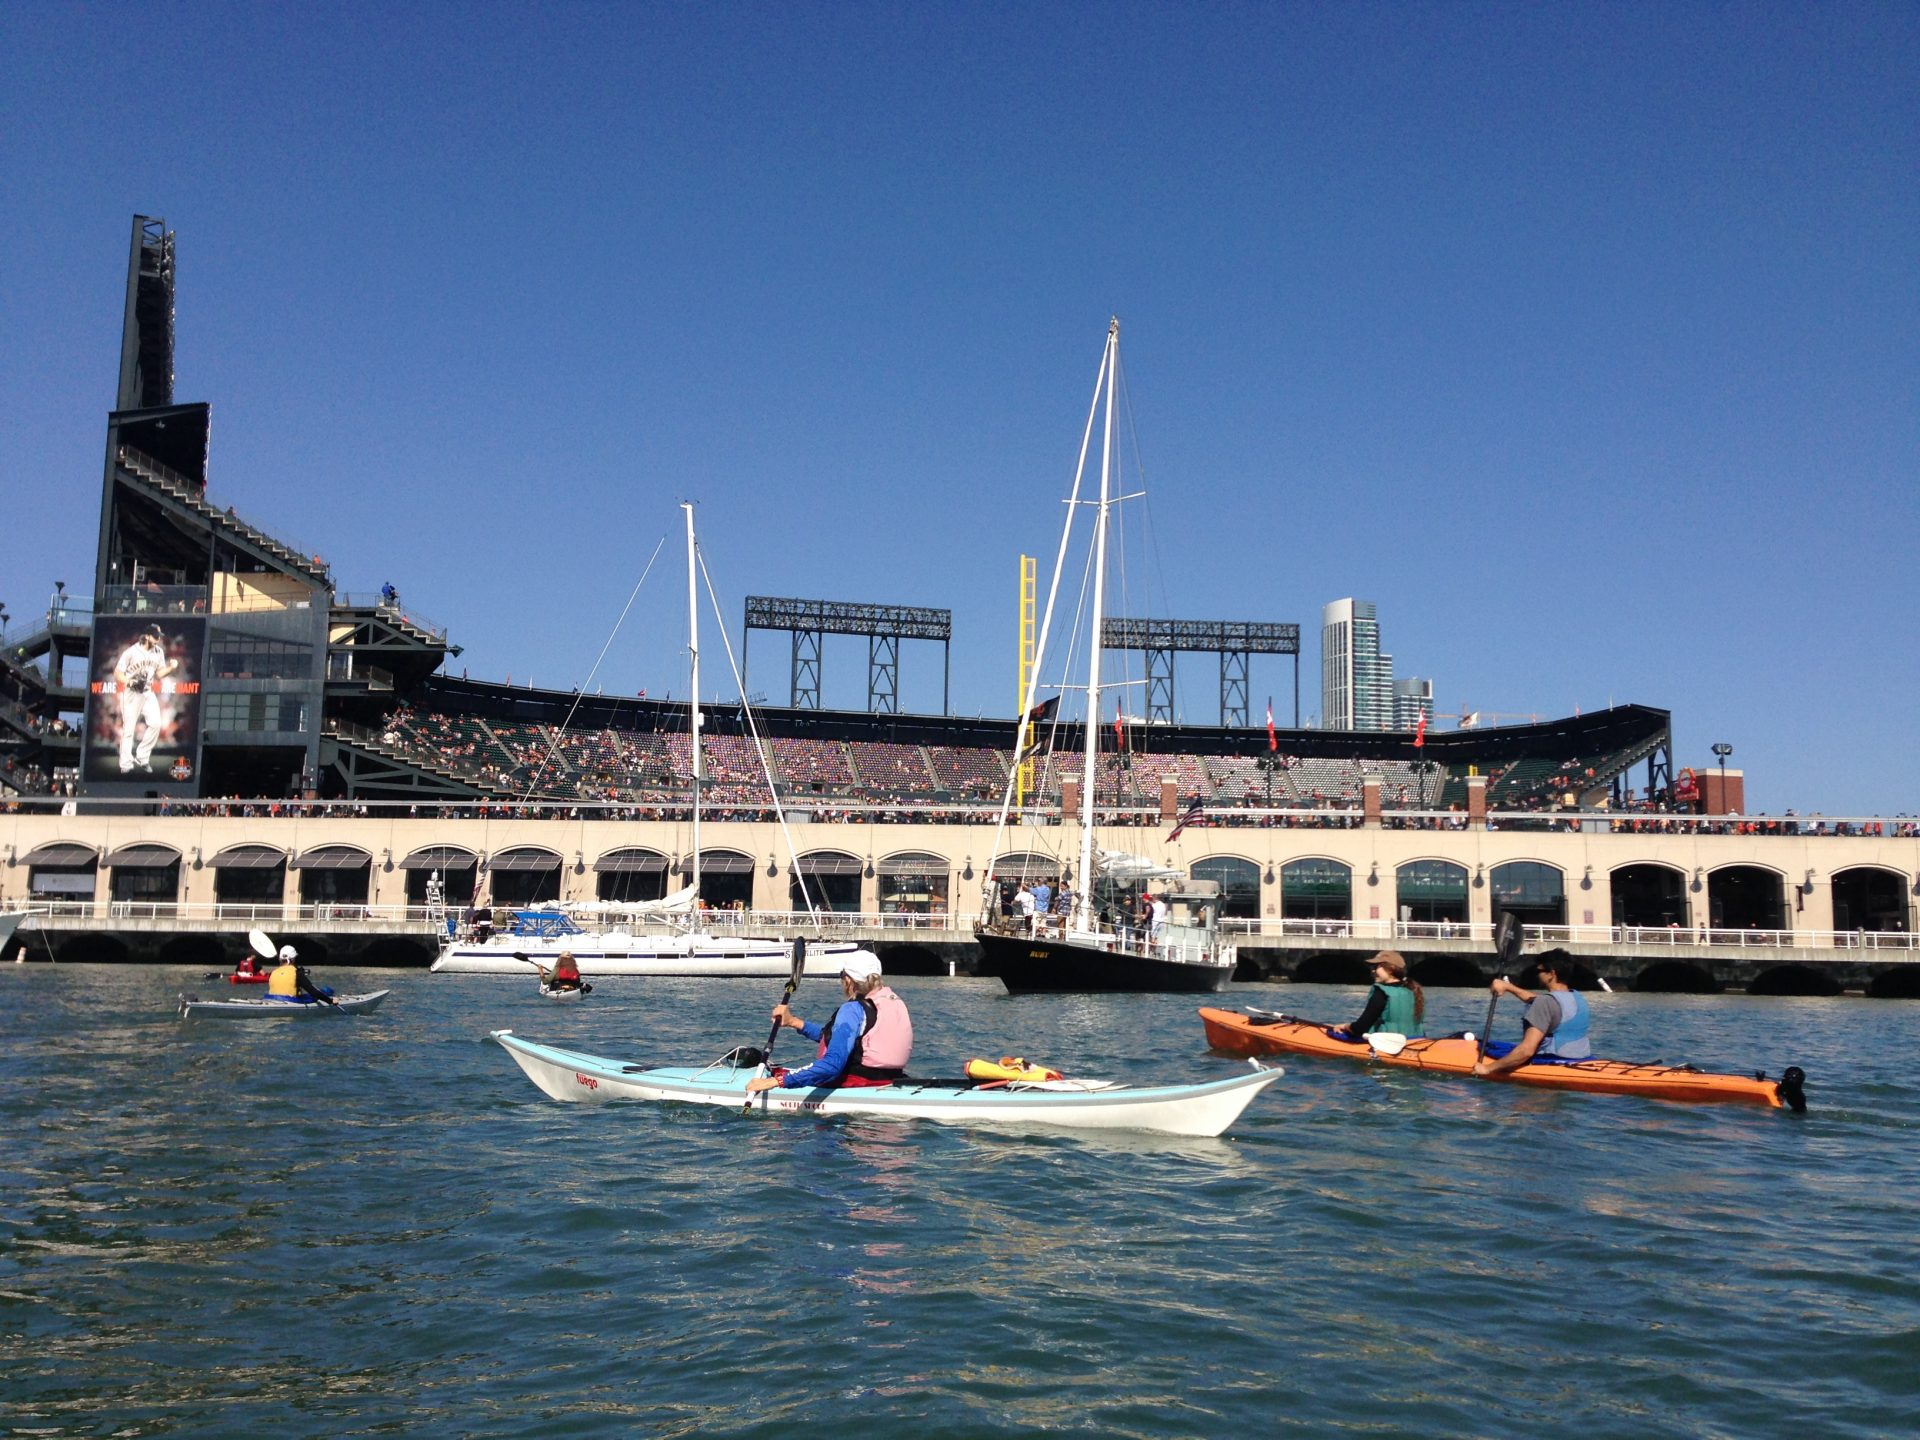 Kayakers and sailboats on the water just outside the Giant's Stadium